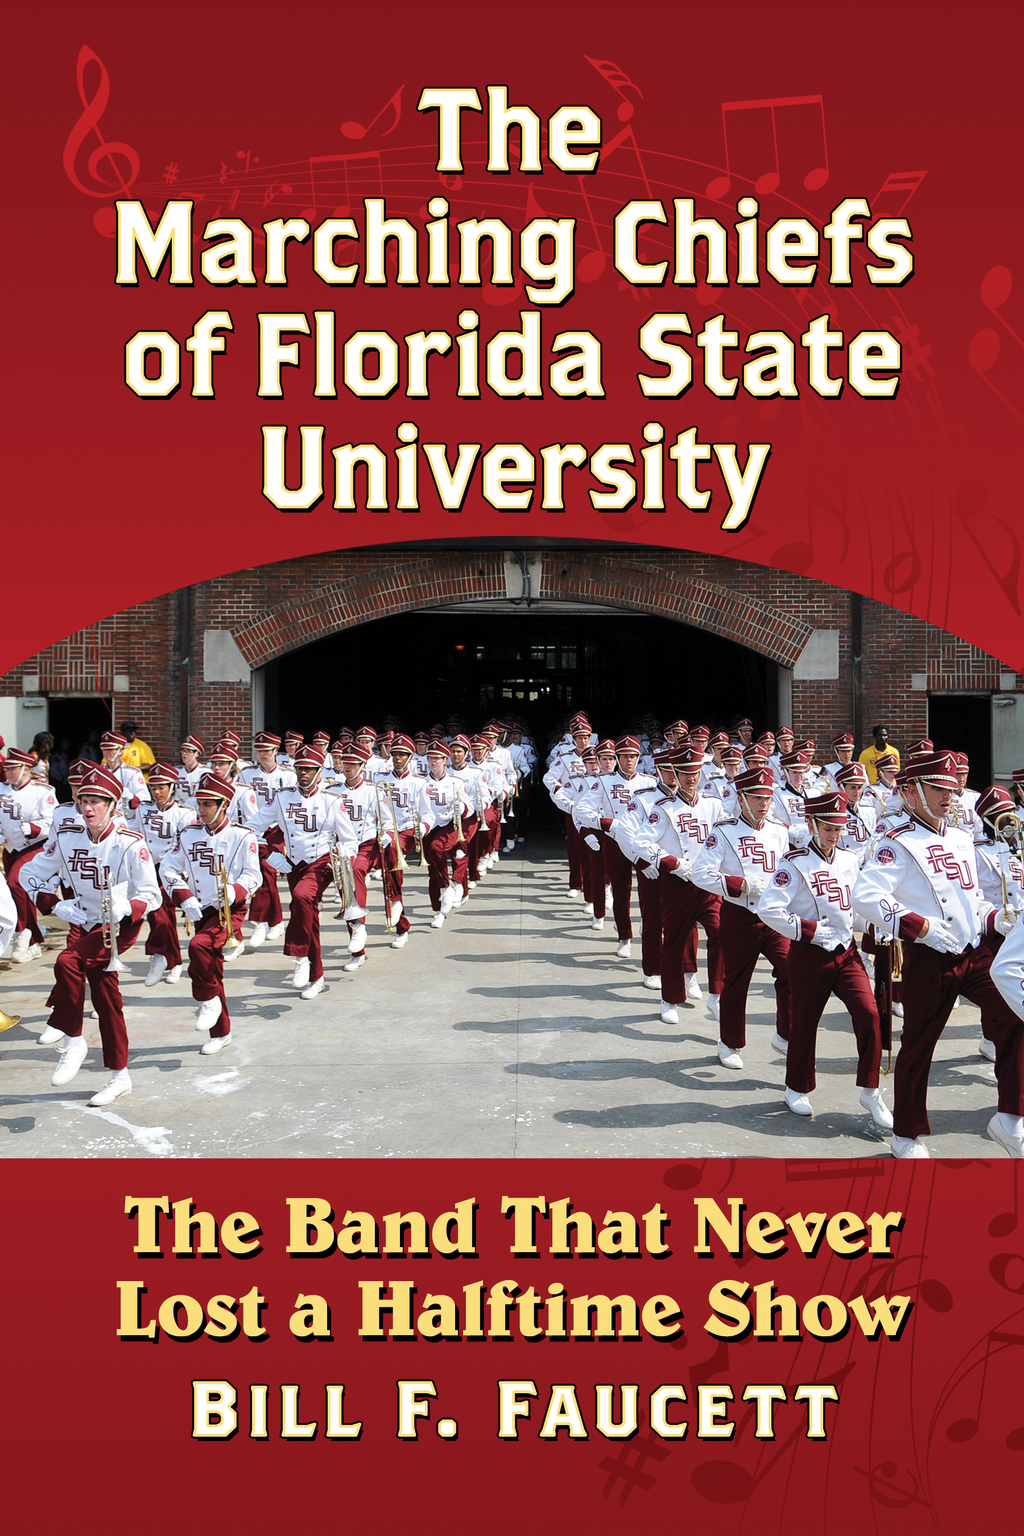 The Marching Chiefs of Florida State University: The Band That Never Lost a Halftime Show (eBook)